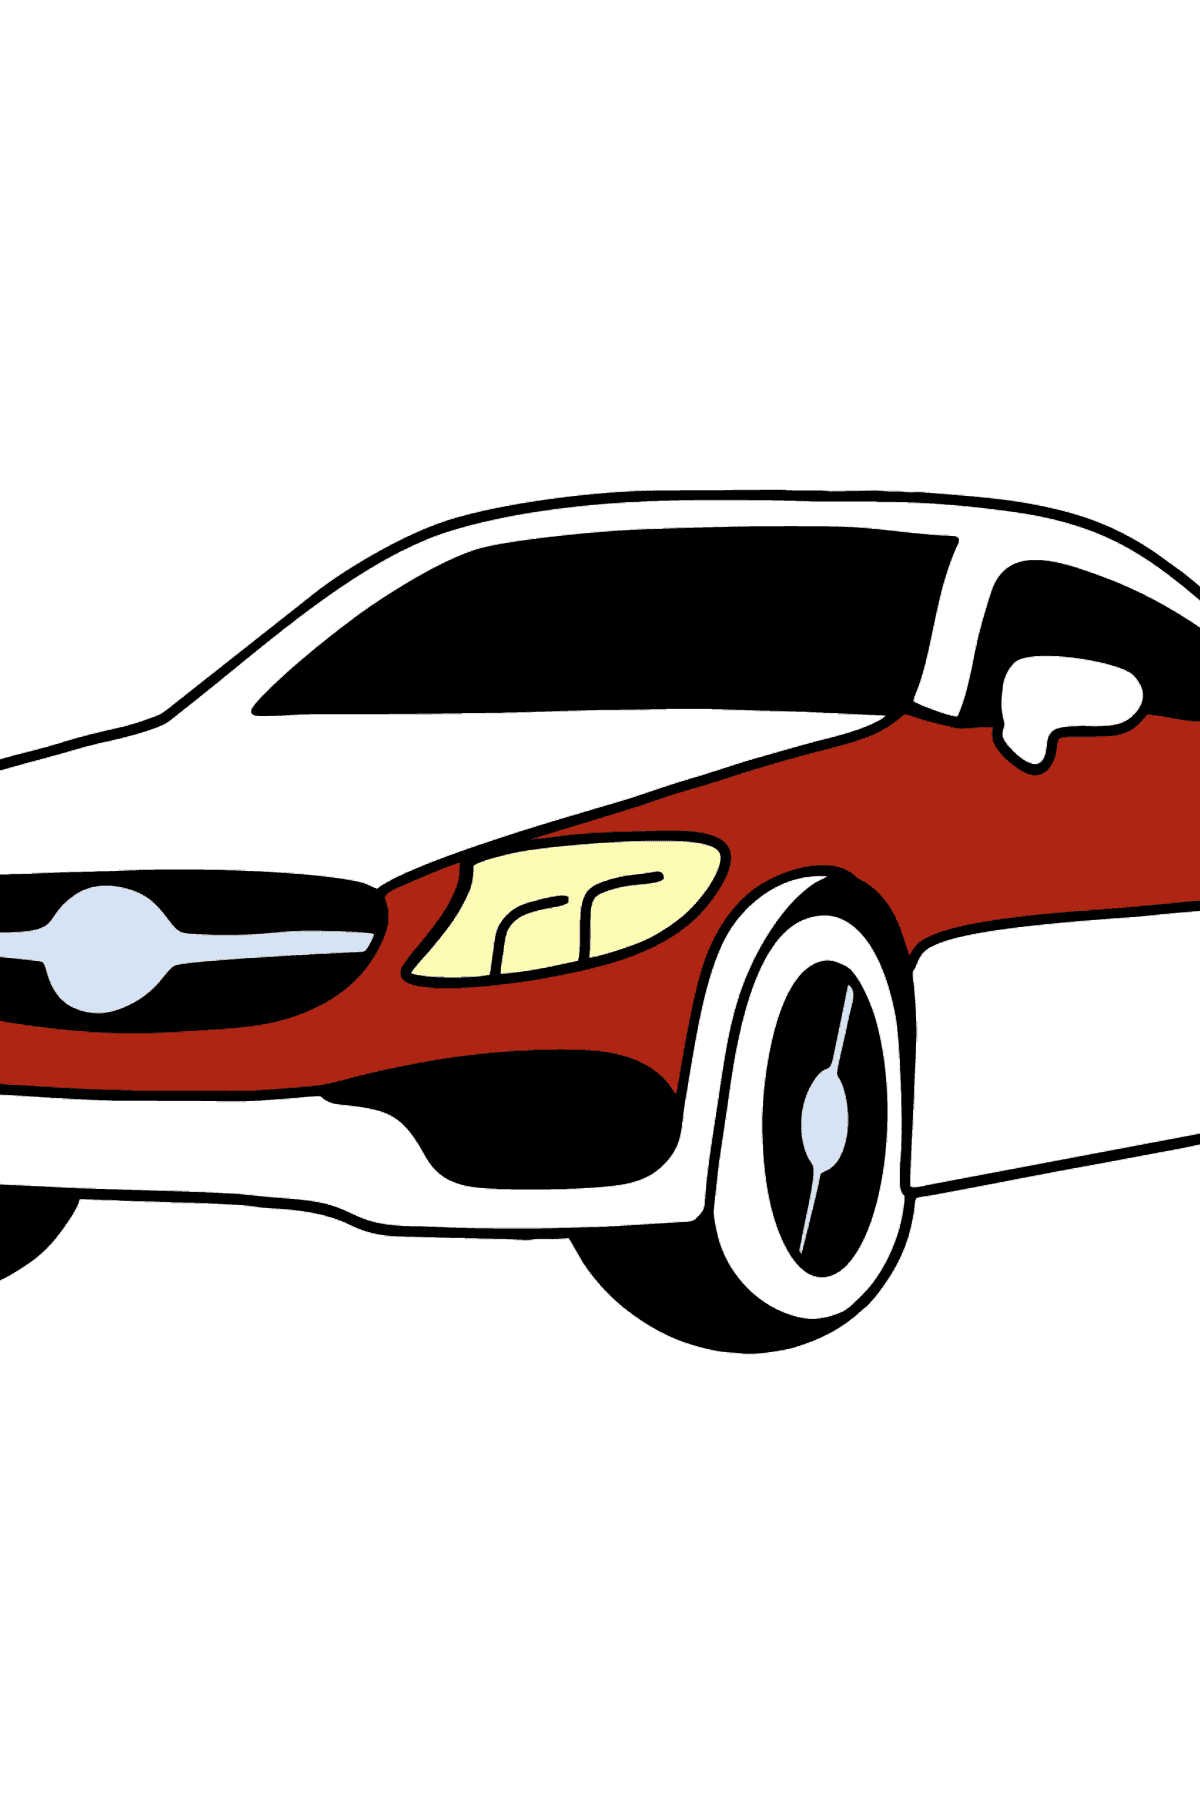 Mercedes C63 AMG car coloring page - Coloring Pages for Kids